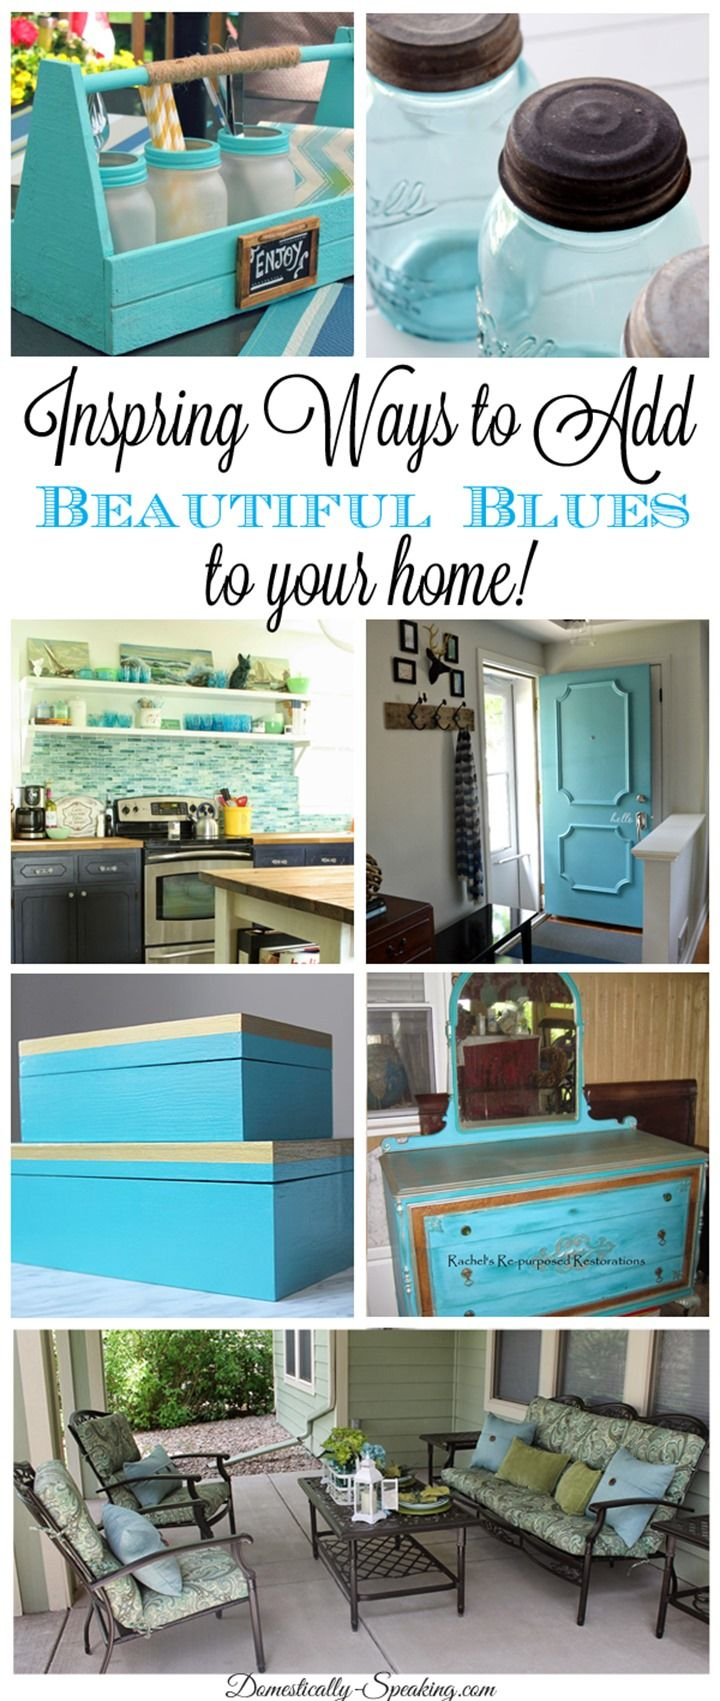 110 best TREND: Blue images on Pinterest | Home decor, Blues and ...